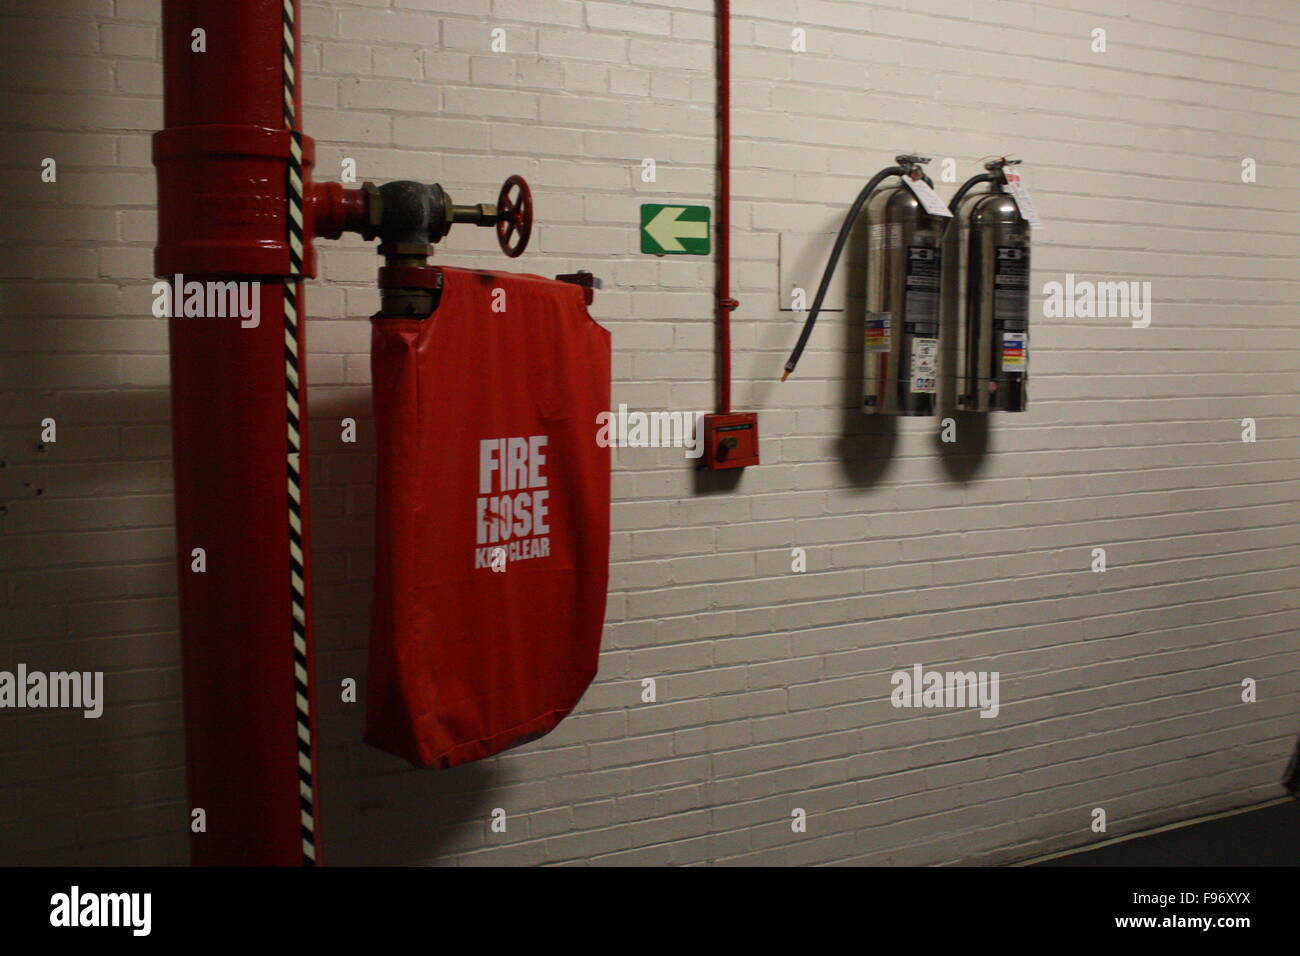 Fire Control And Safety Equipment Mounted On A Wall - Stock Image